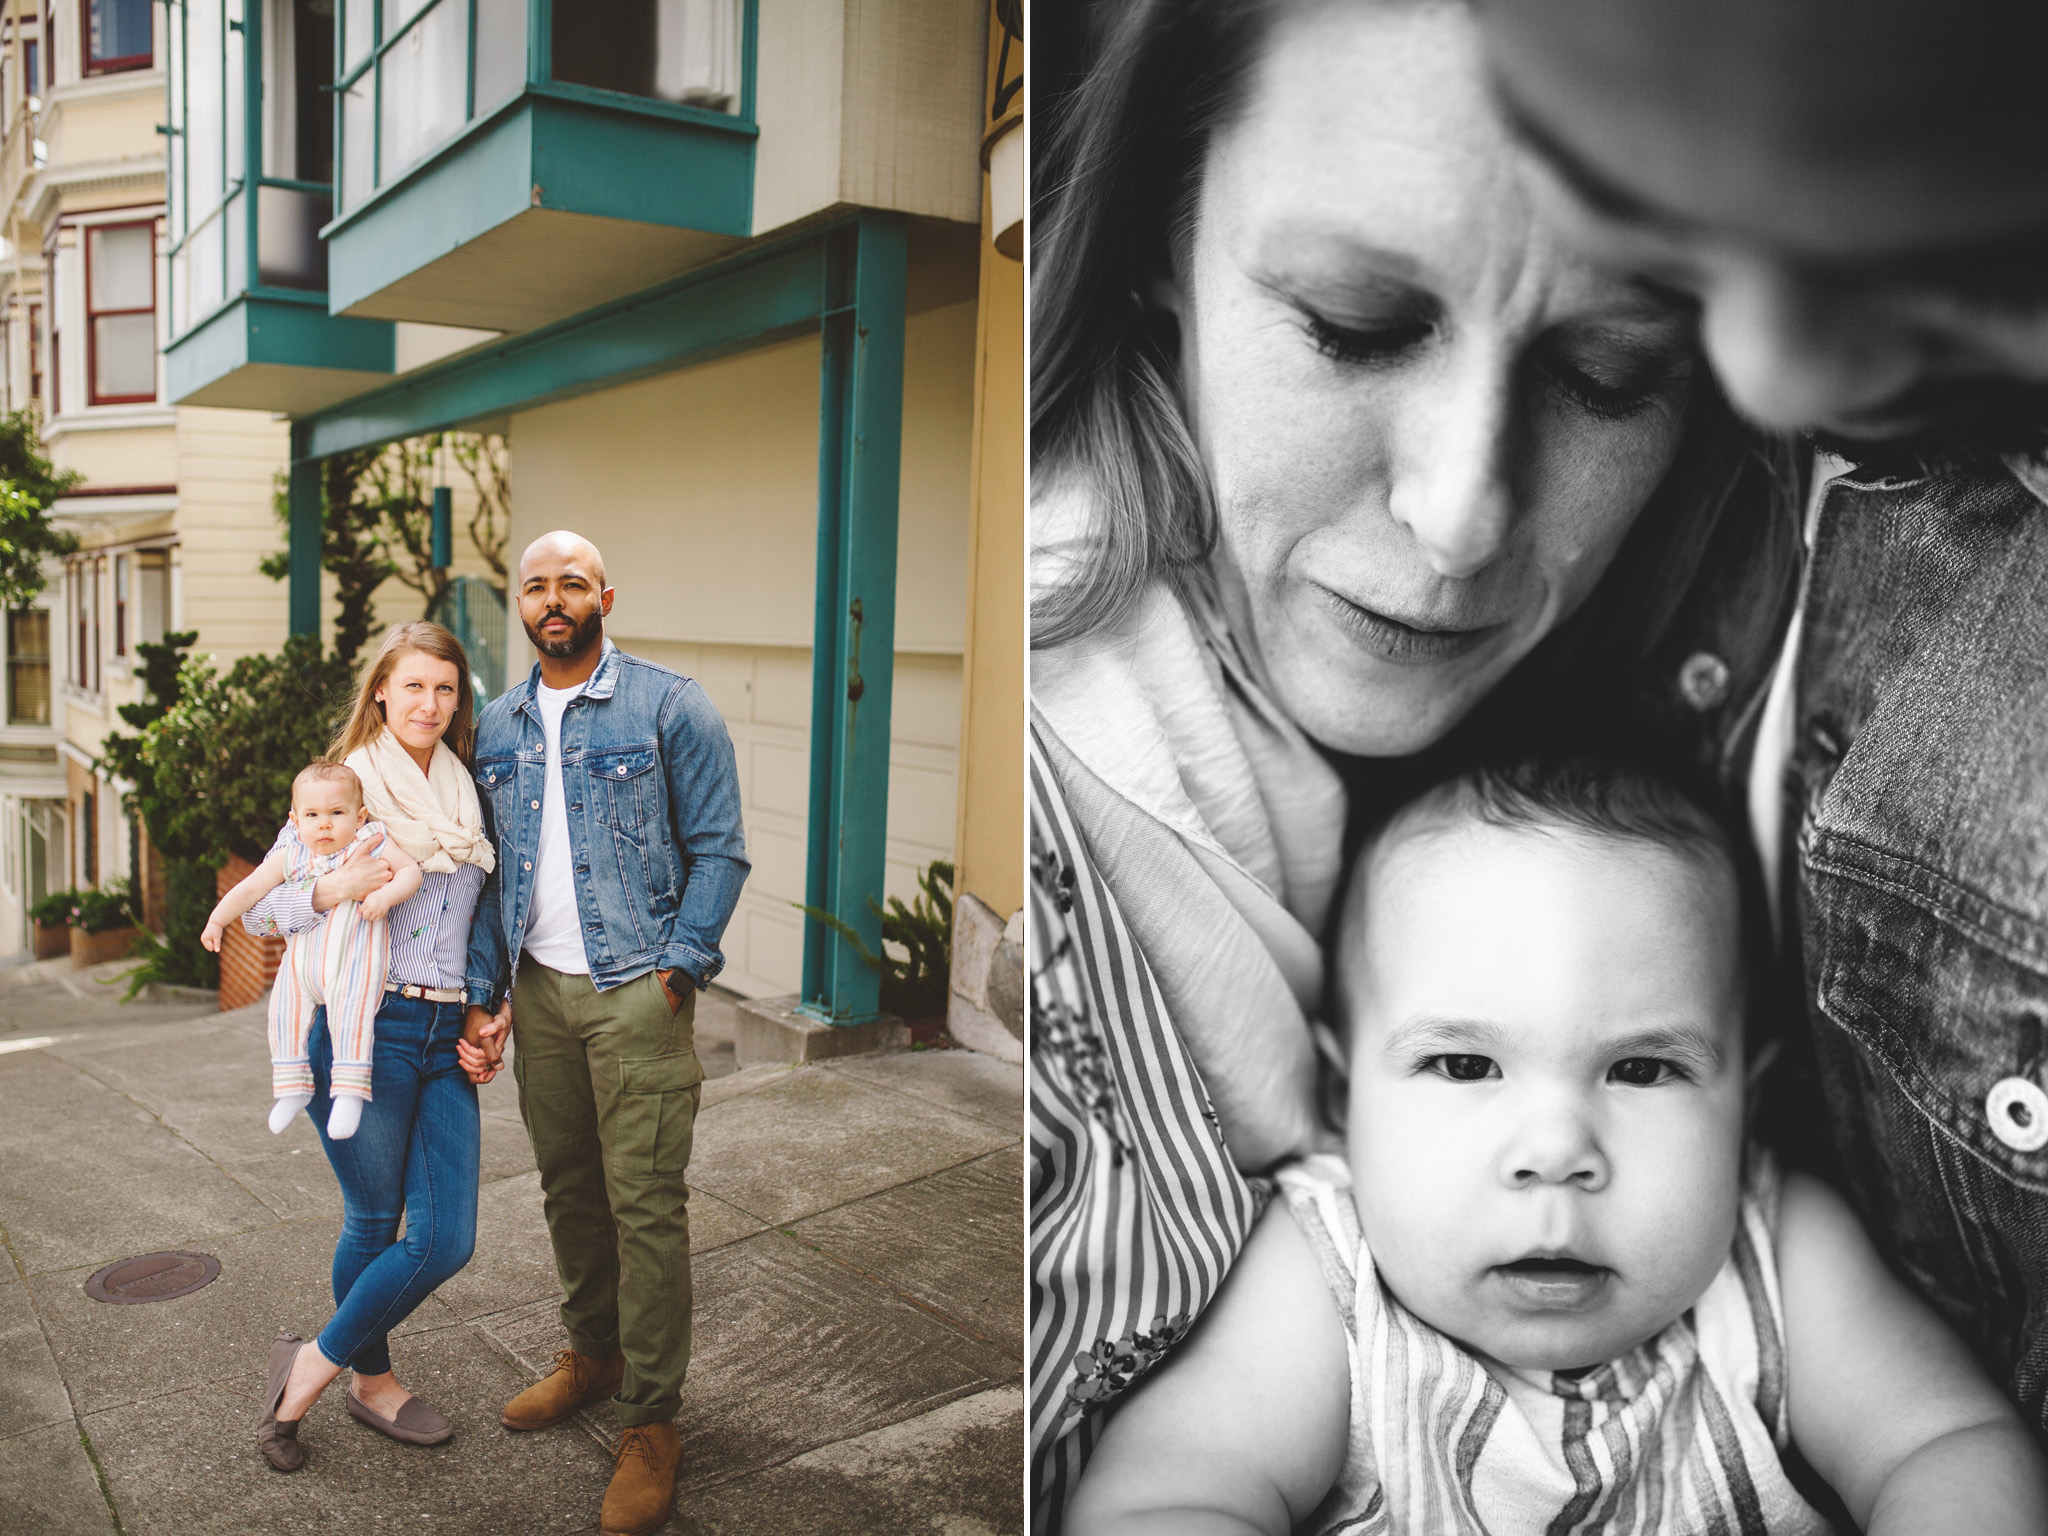 Candid family pictures exploring the colorful streets of San Francisco